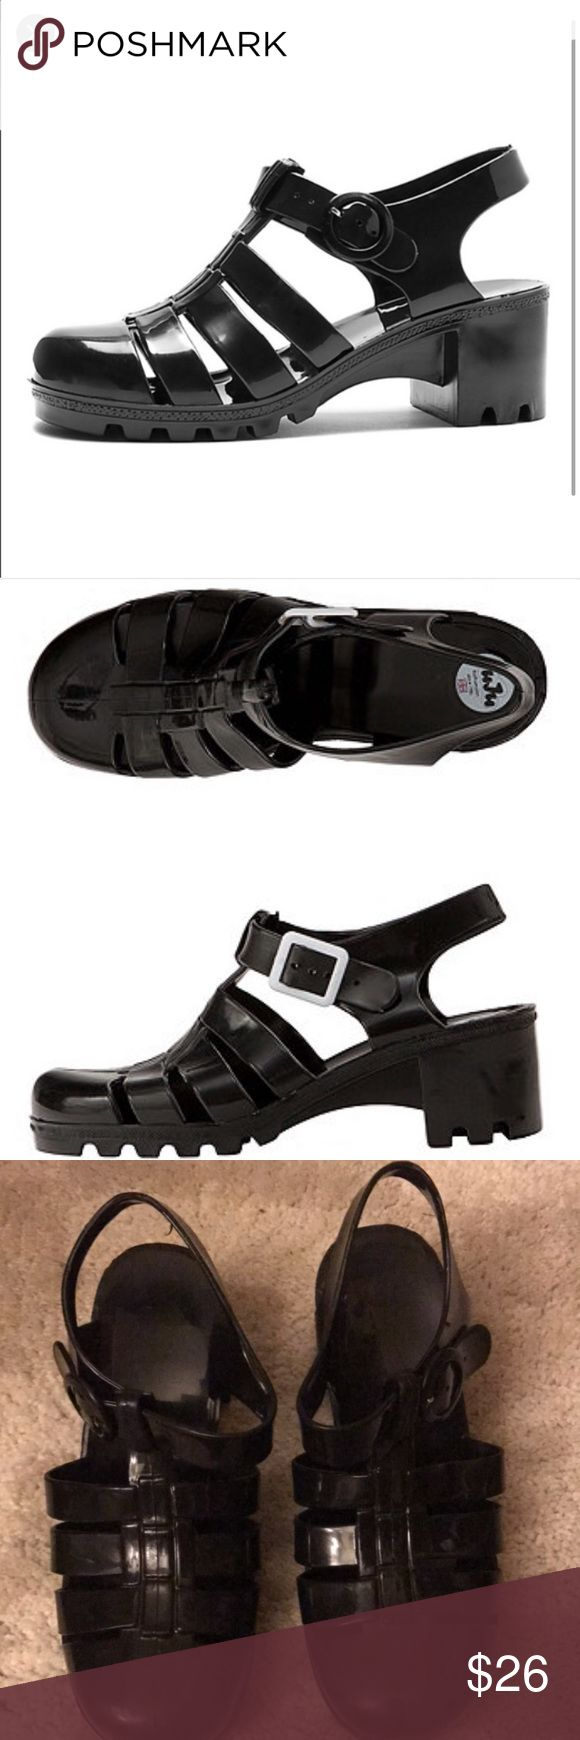 Black jelly sandals american apparel - American Apparel Black Jelly Shoes So Cute Summer Absolutely Adorable Black Jelly Shoes Worn